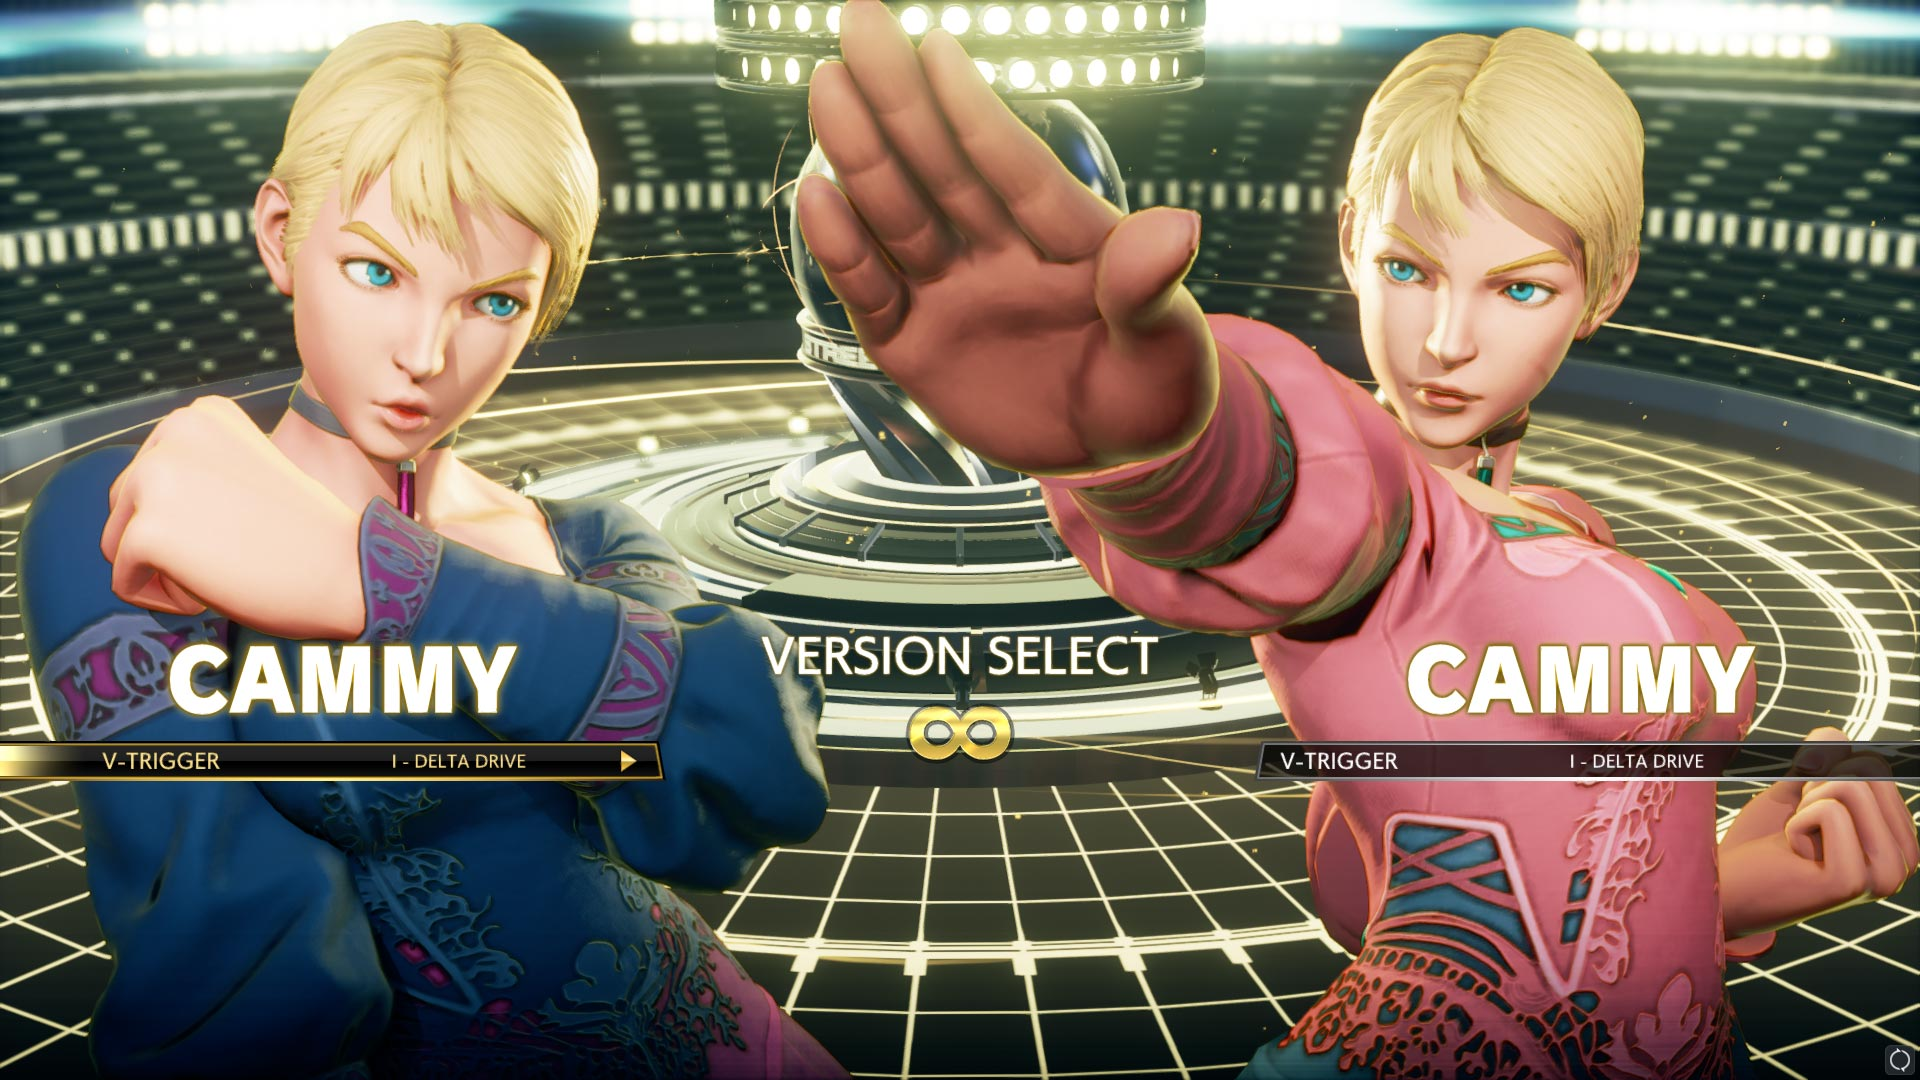 Cammy's Fiona costume colors 6 out of 6 image gallery